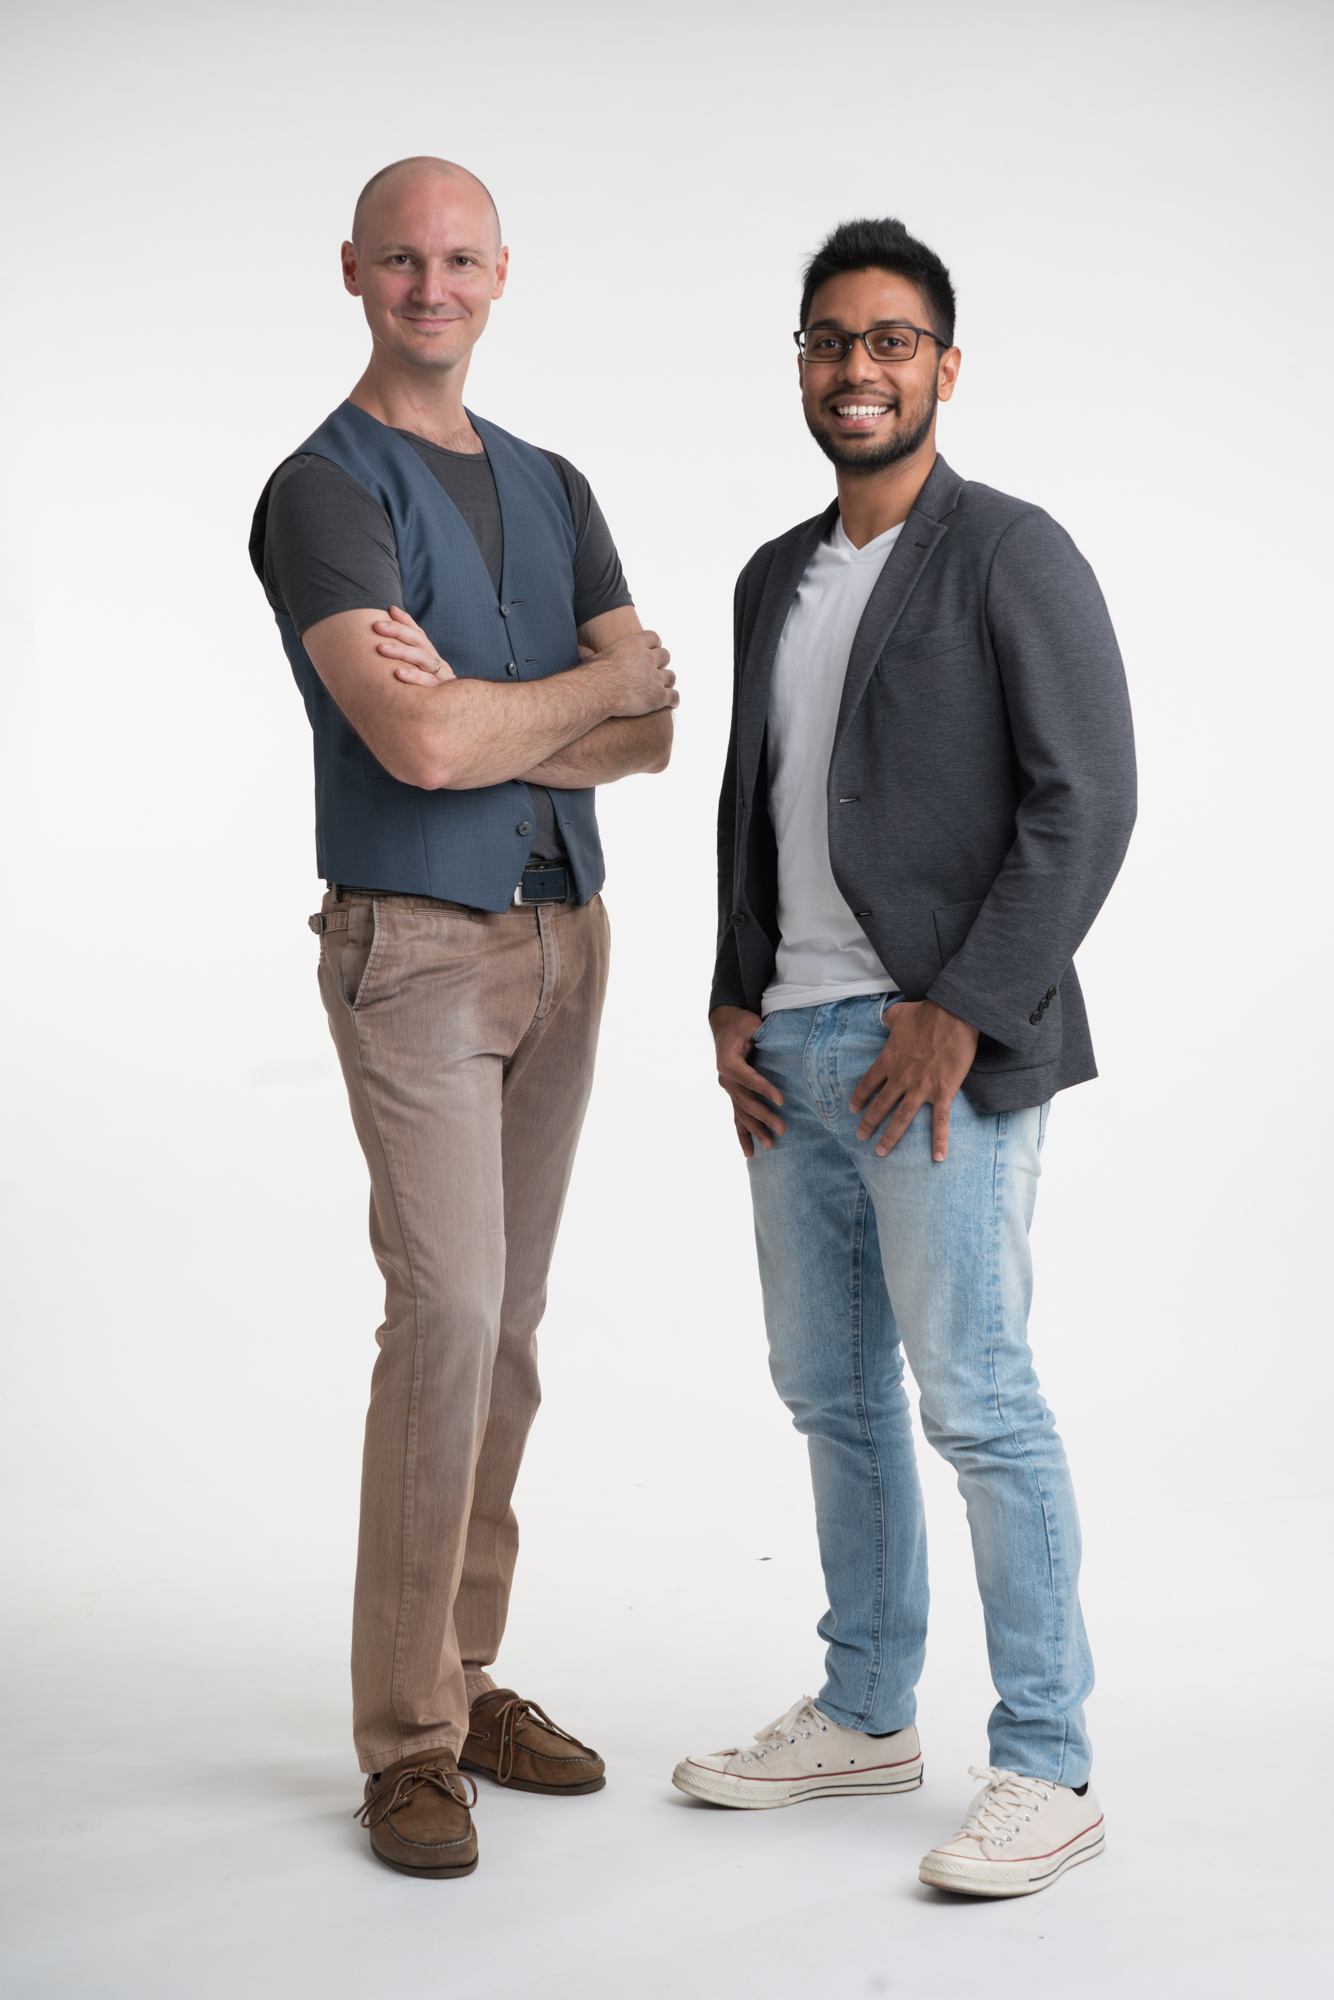 Saikrishnan (Sai) is the CEO and co-founder of SensorFlow who, driven by the vision to mitigate global challenges, started SensorFlow with co-founder Max Pagel in 2016. Photo Courtesy: SensorFlow